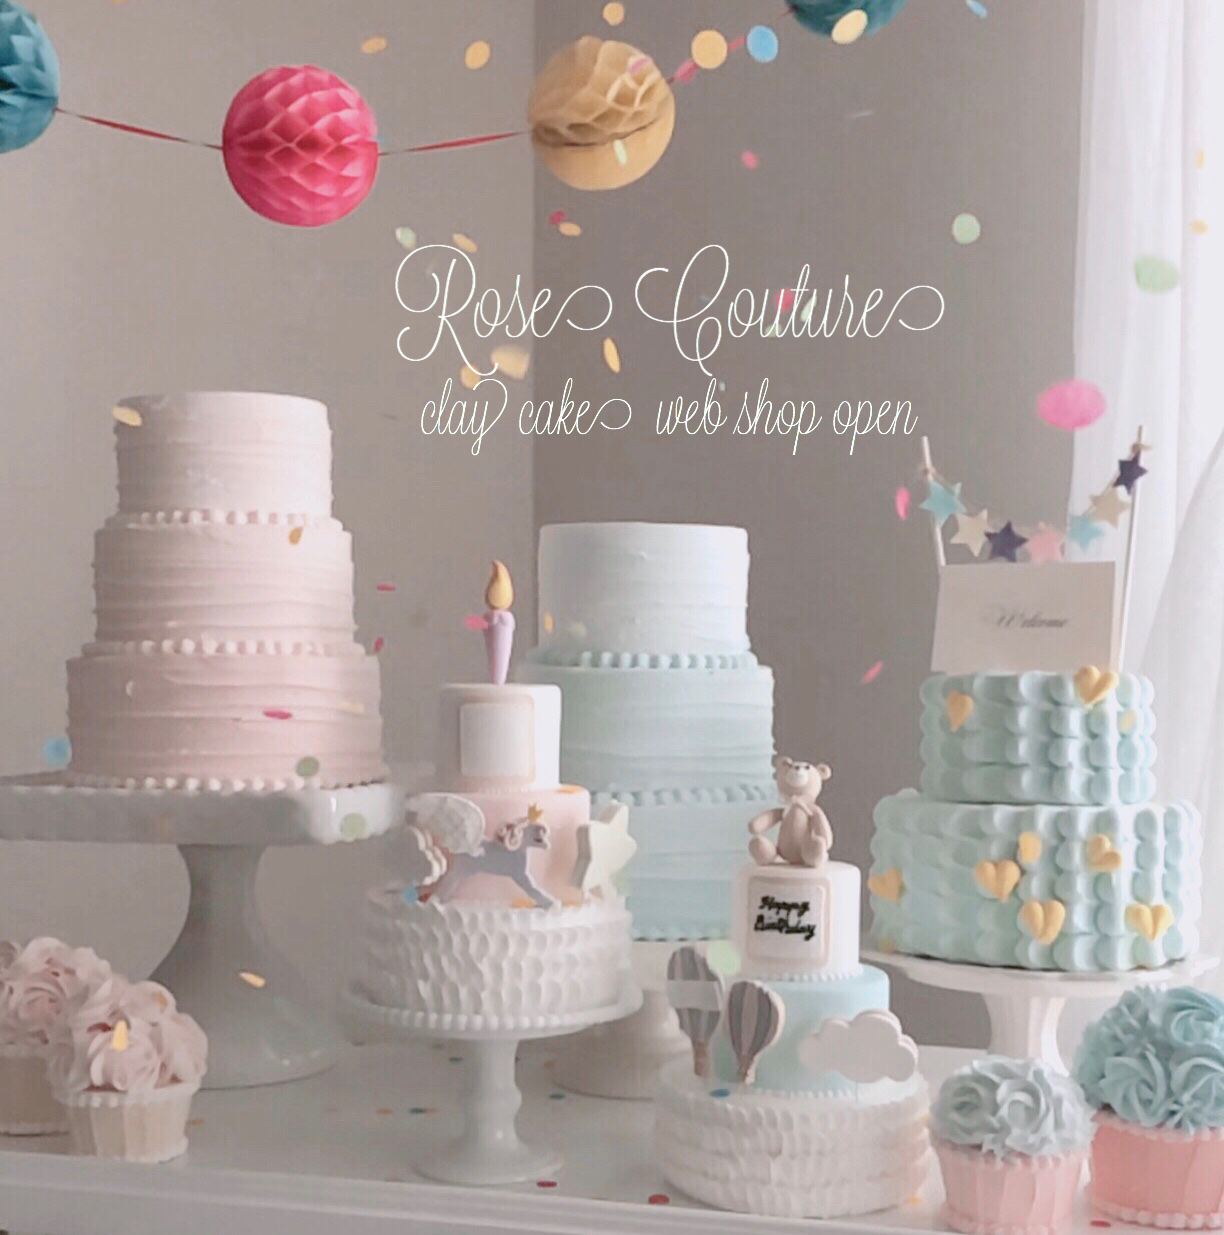 Rose  Couture clay cake  shop